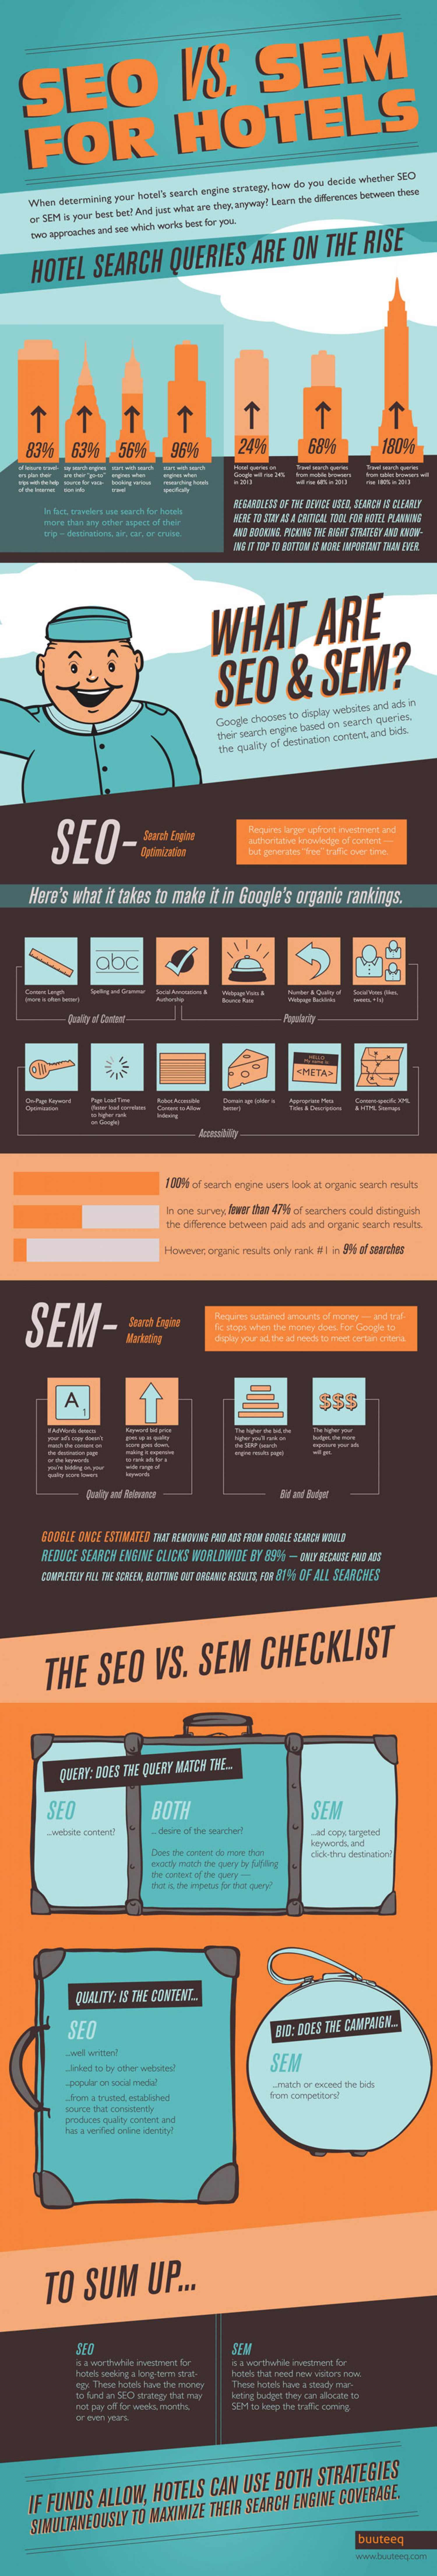 Survey On SEO VS SEM For Hotels Infographic